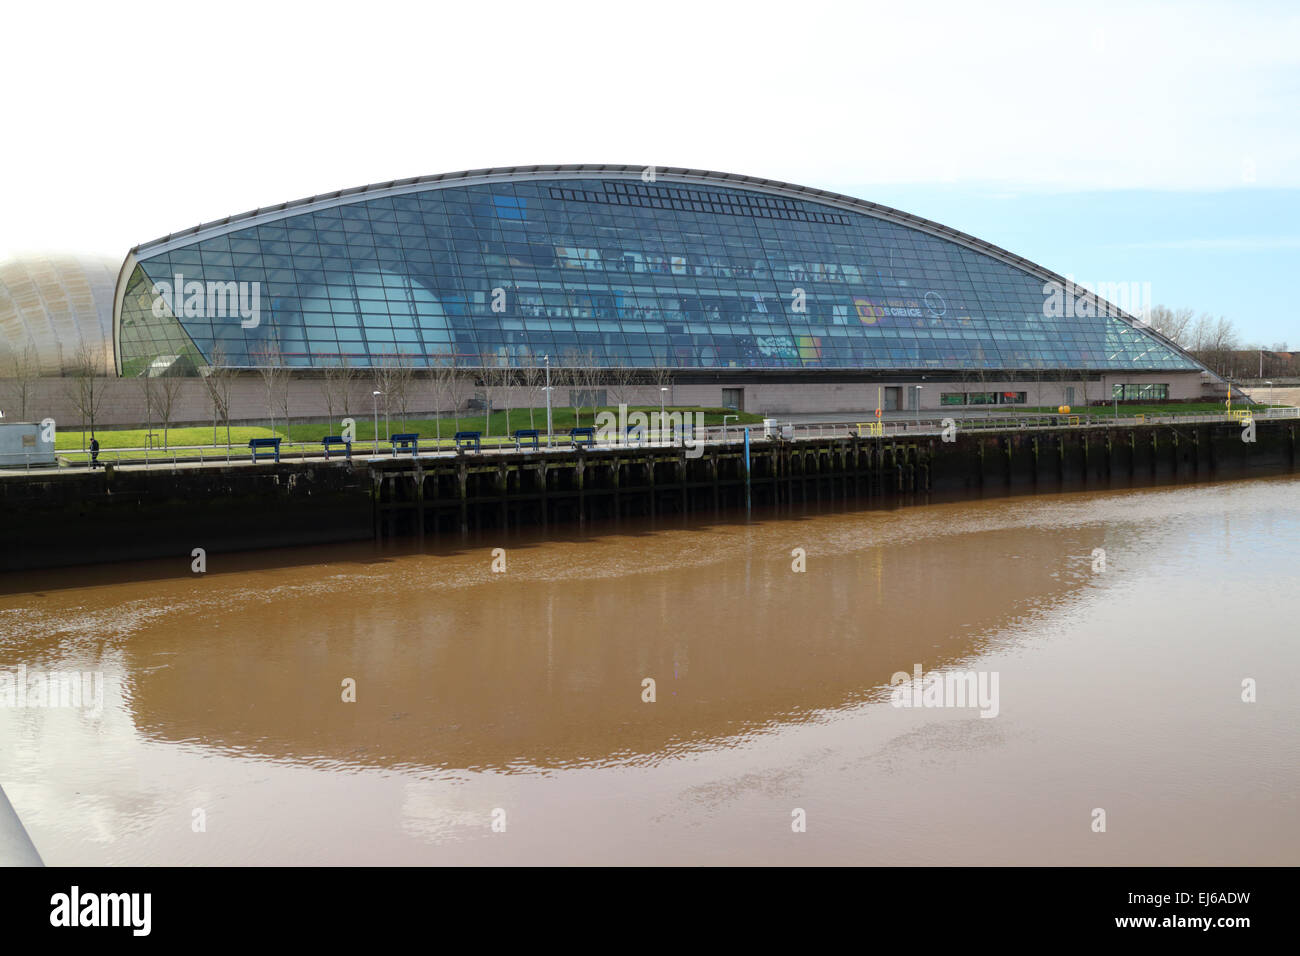 Glasgow science centre science mall building pacific quay Scotland uk - Stock Image